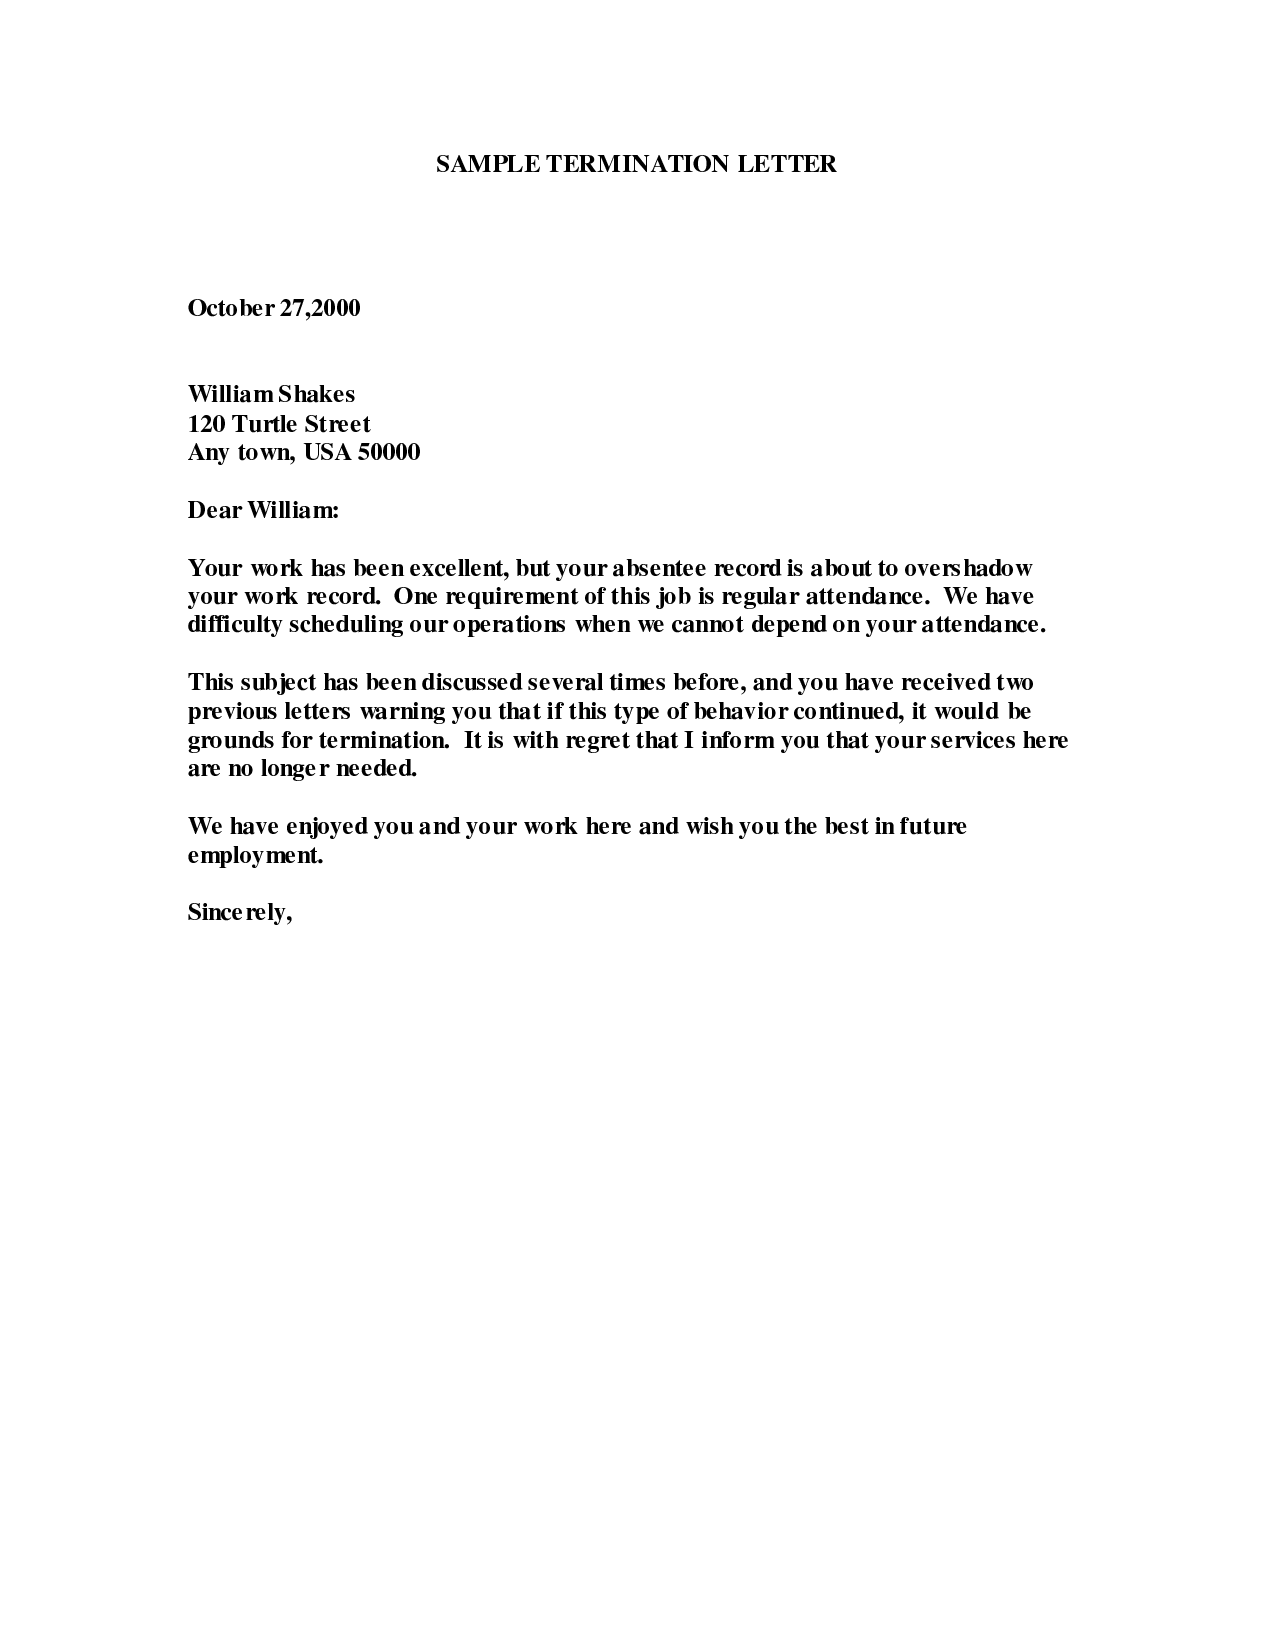 Sample separation letter doc separation of employment letter doc separation of employment letter termination sample employee termination letter separation of employment letter spiritdancerdesigns Image collections